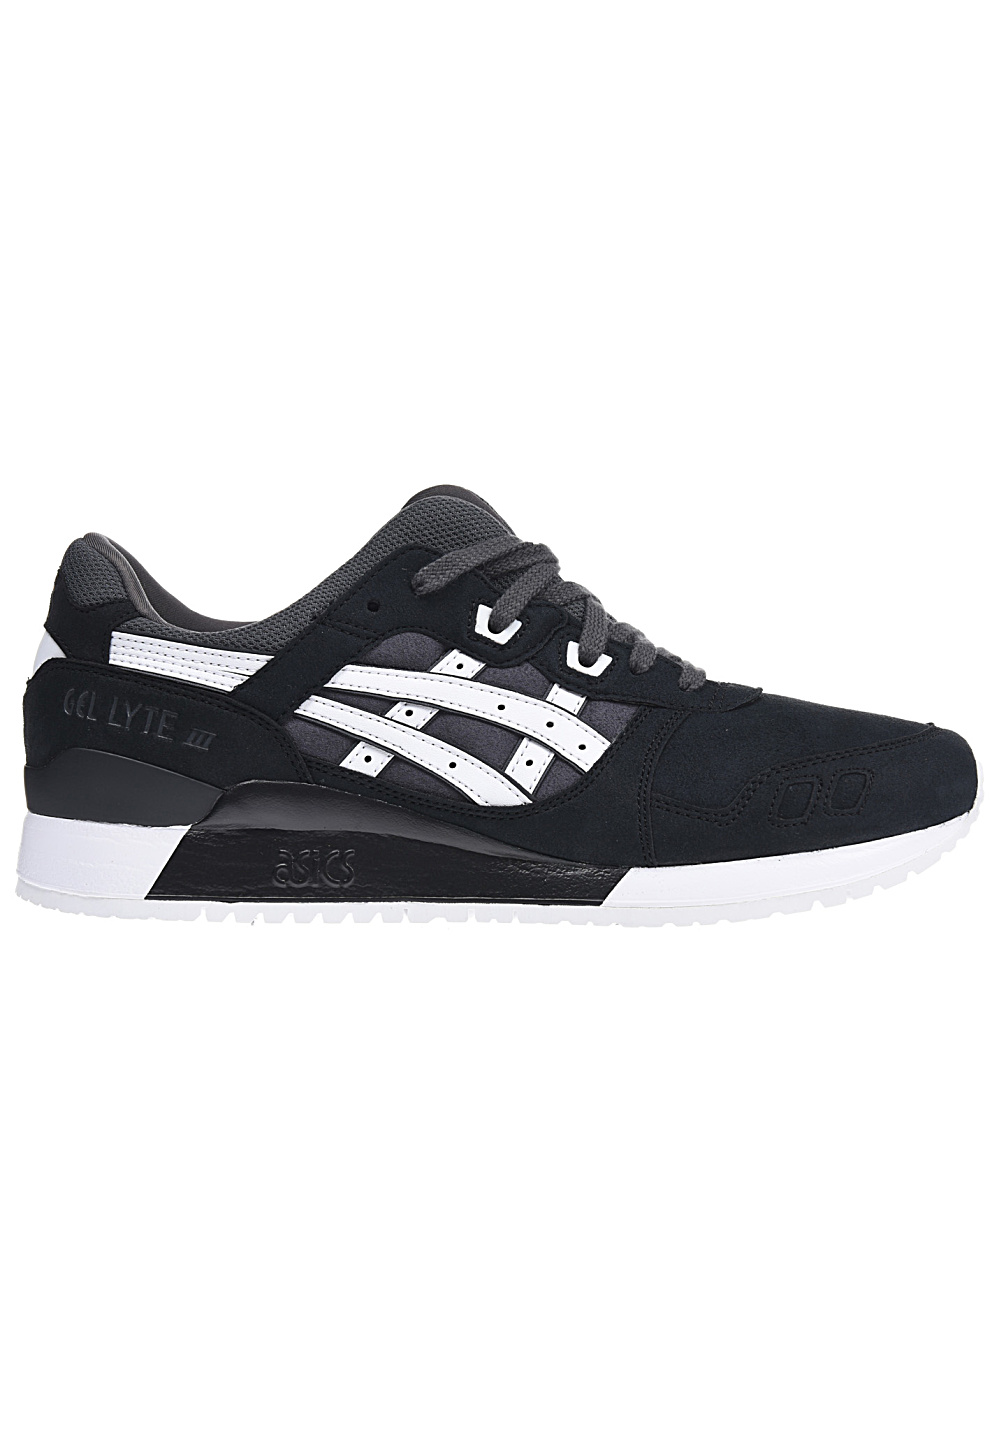 best service c3bb3 3d701 Asics Tiger Gel-Lyte III - Sneakers for Men - Black